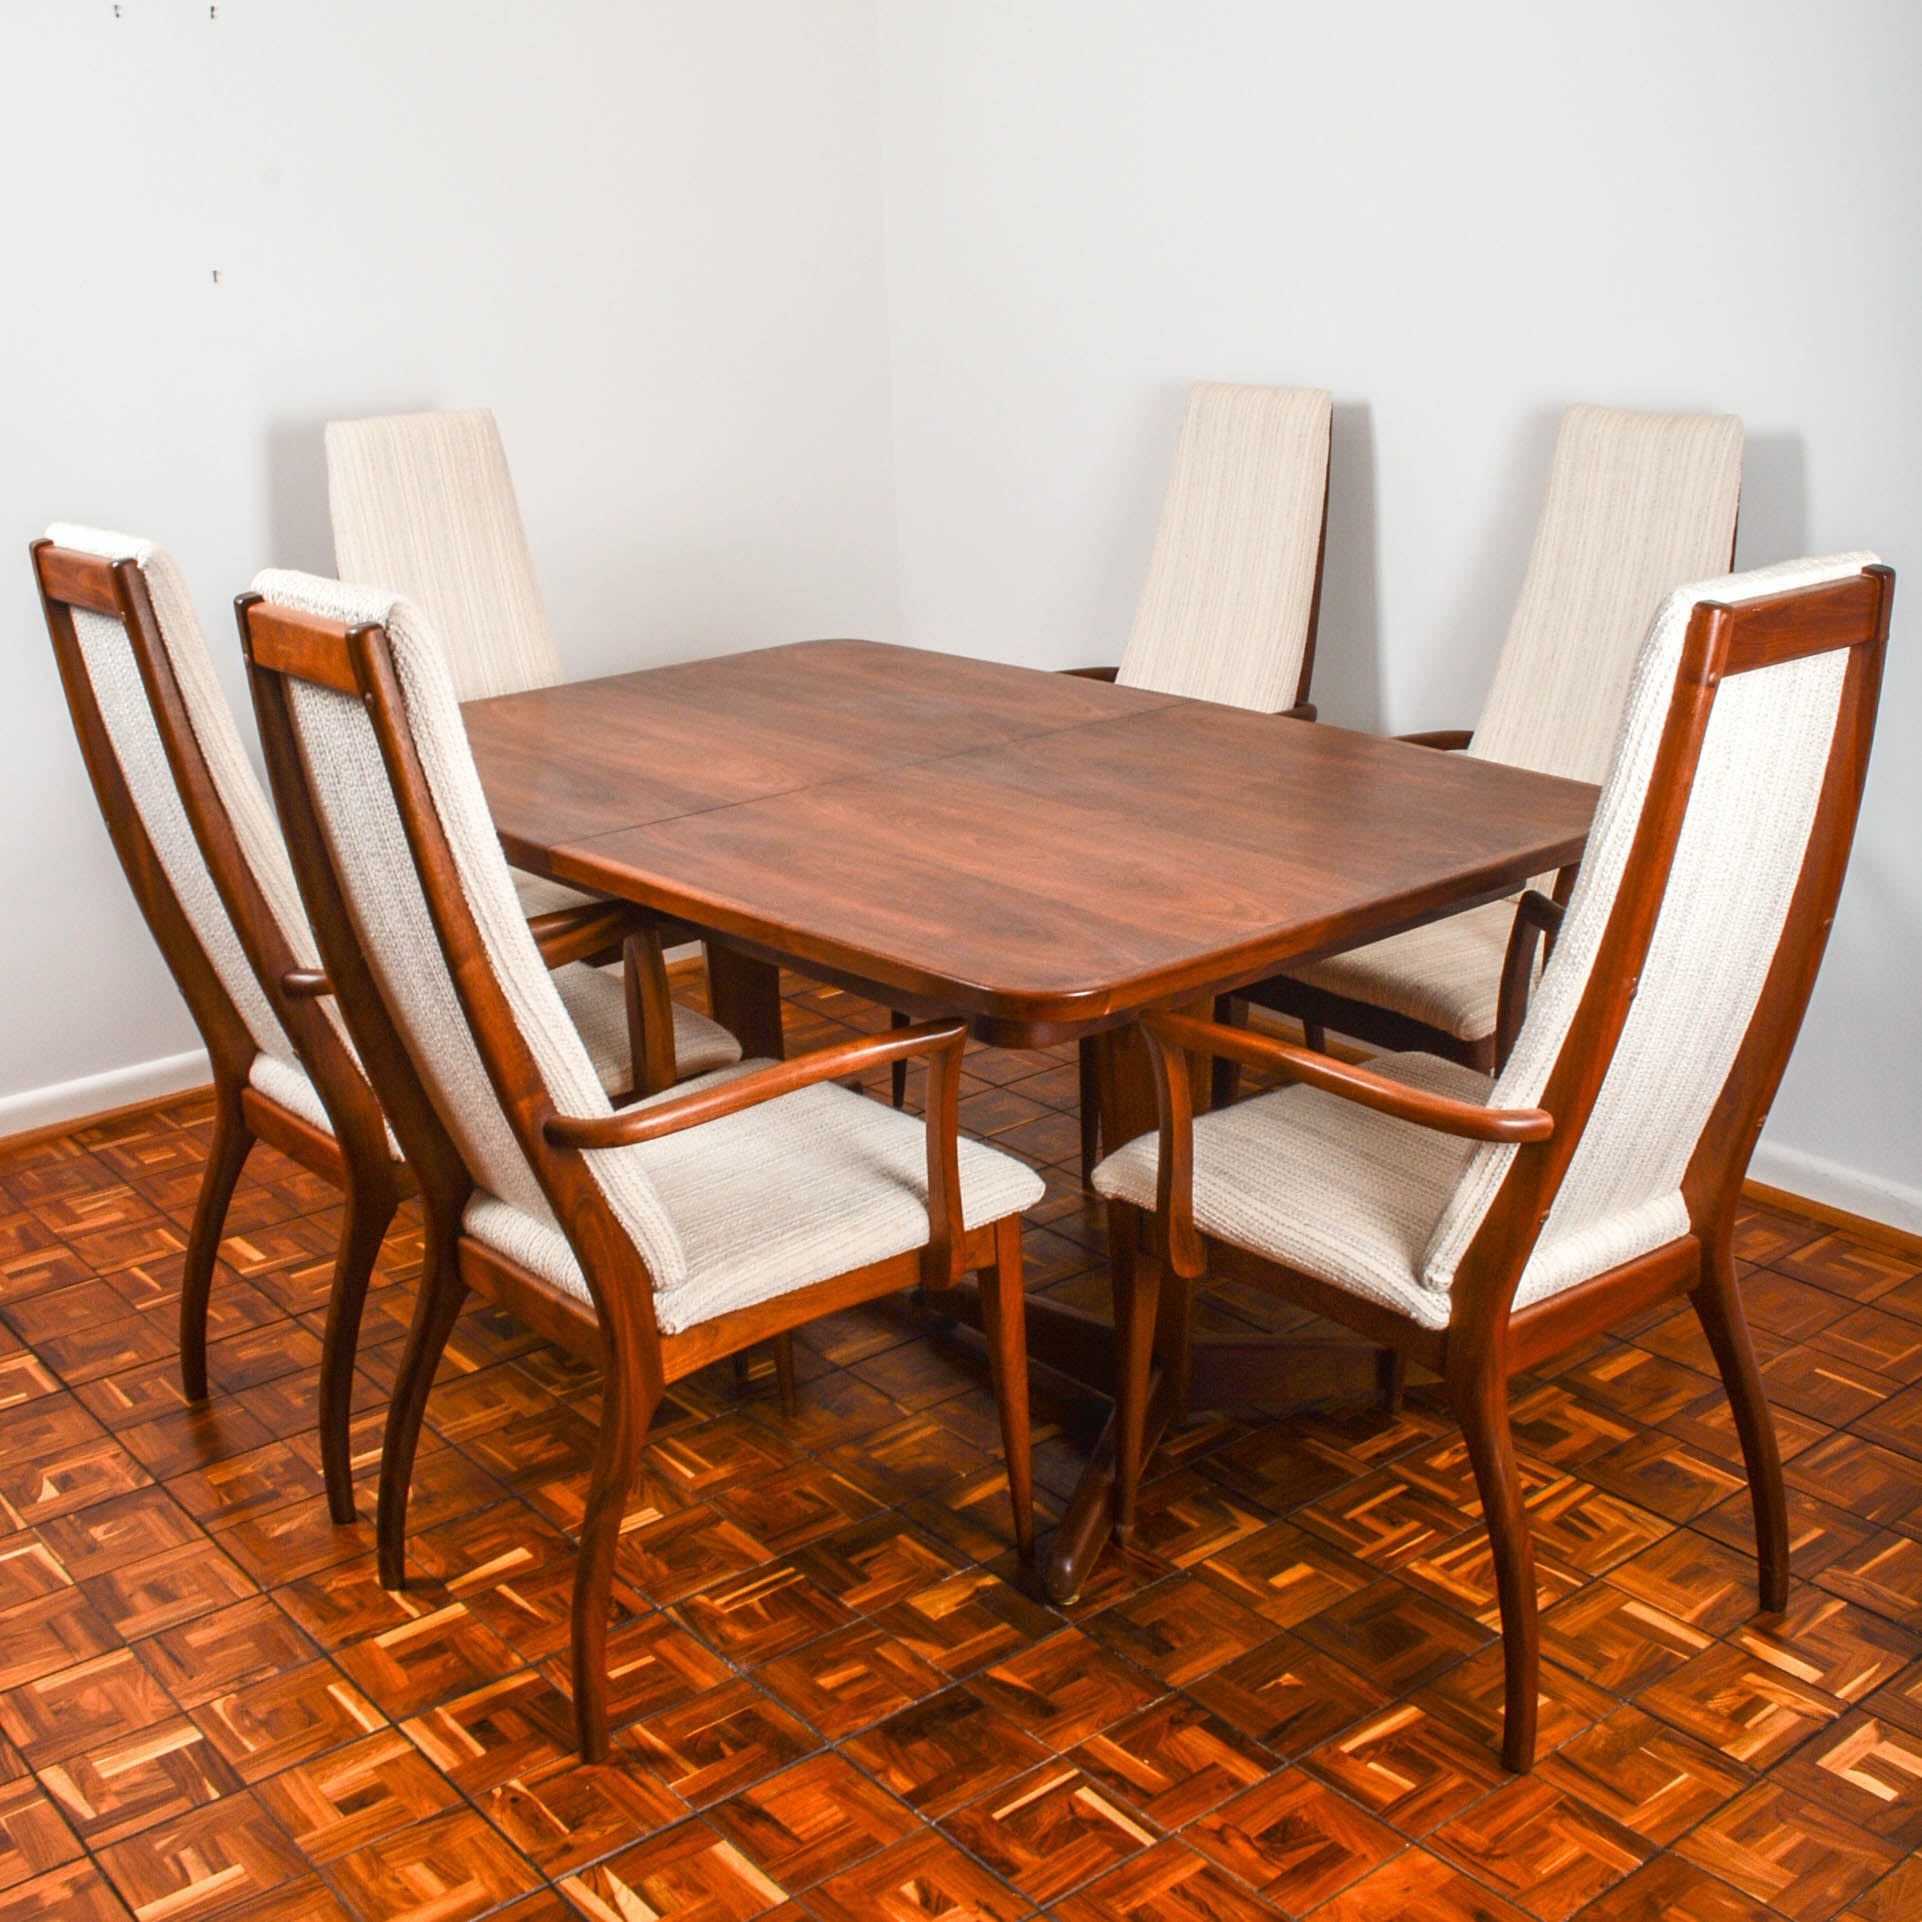 Danish Modern Dining Table and Six Chairs by Otmar